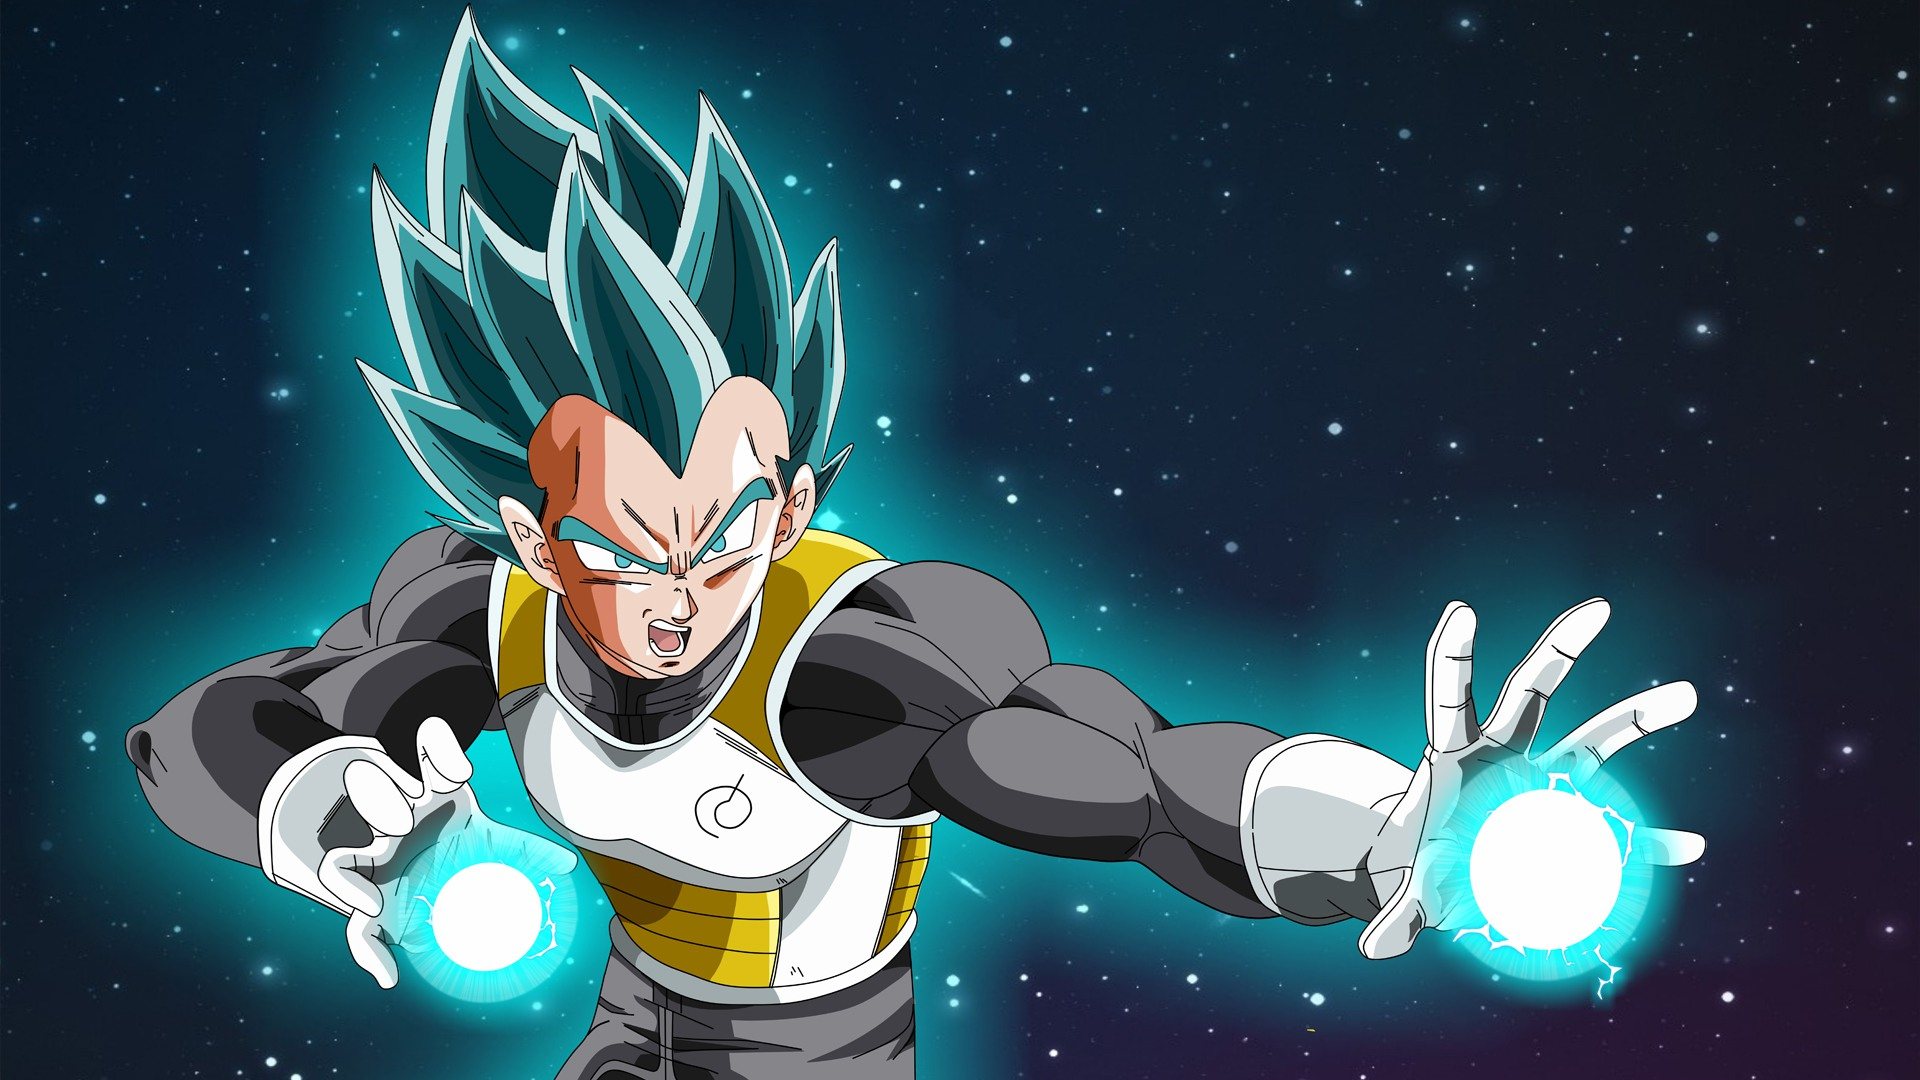 Live Wallpaper Iphone X Dragon Ball Vegeta Super Saiyan Blue Fond D 233 Cran Hd Arri 232 Re Plan